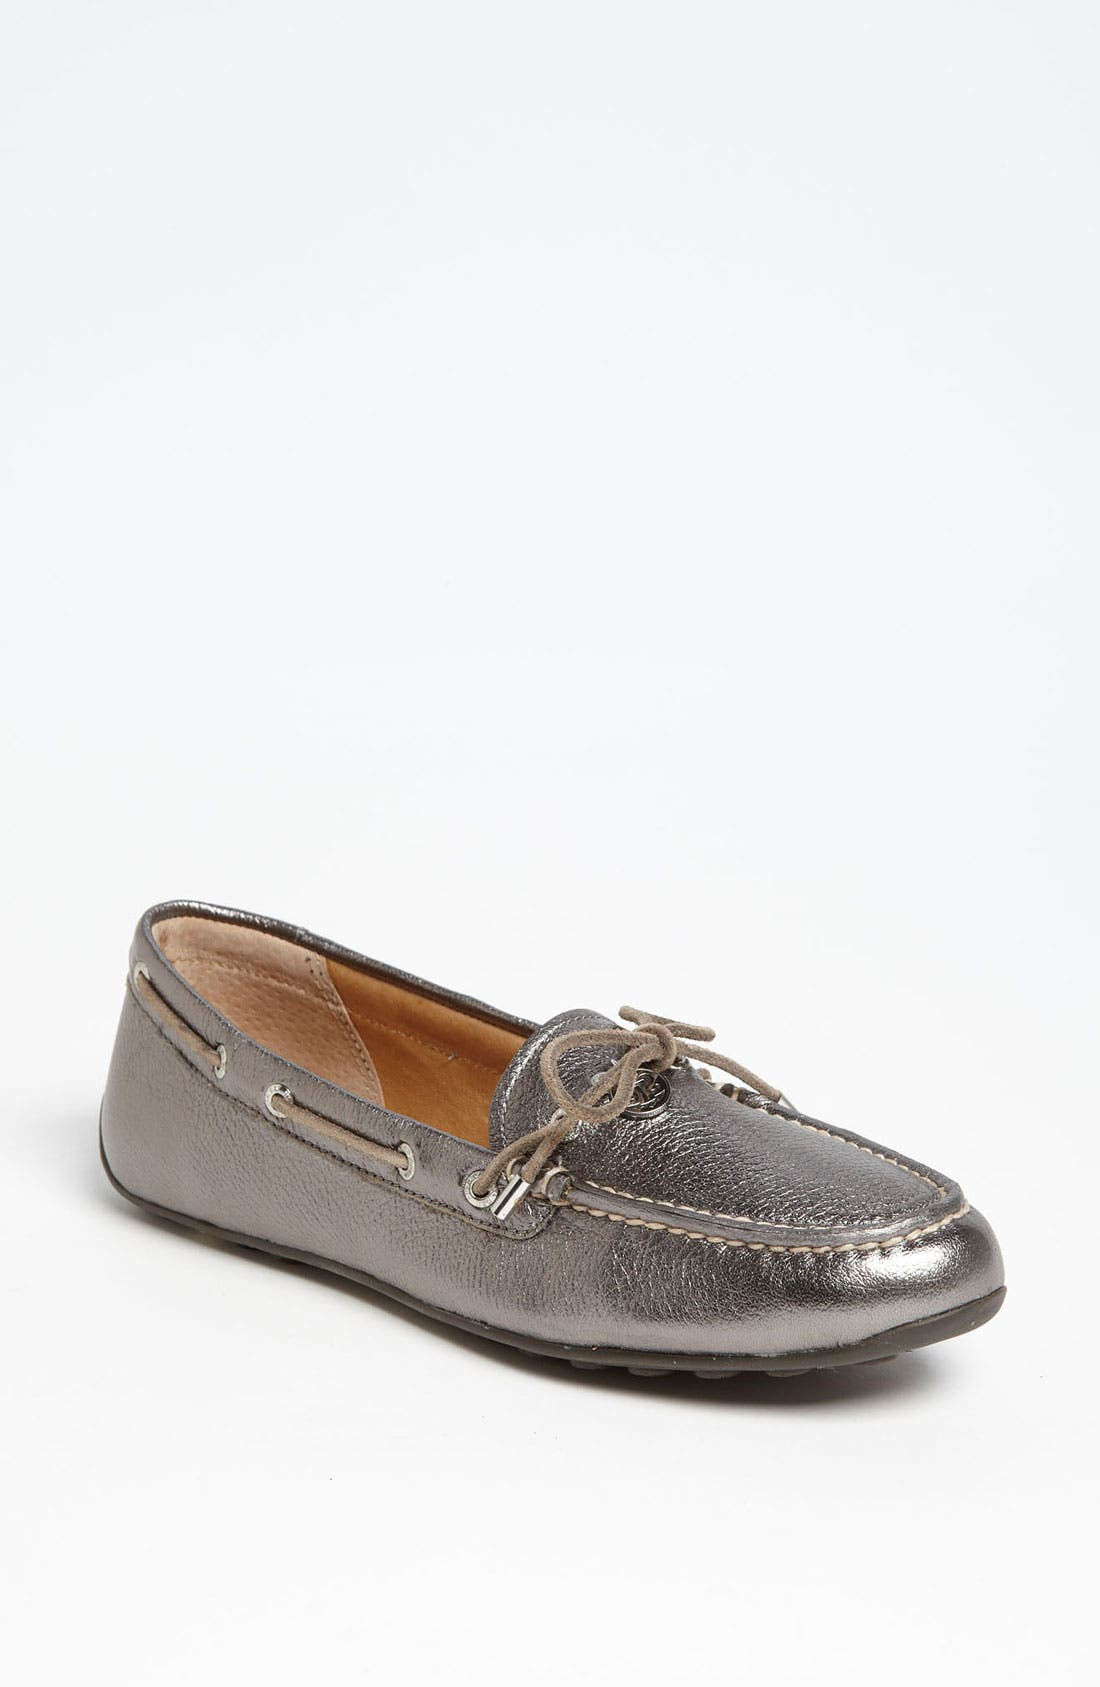 Main Image - SPERRY TOP-SIDER LAURA MOCASSIN